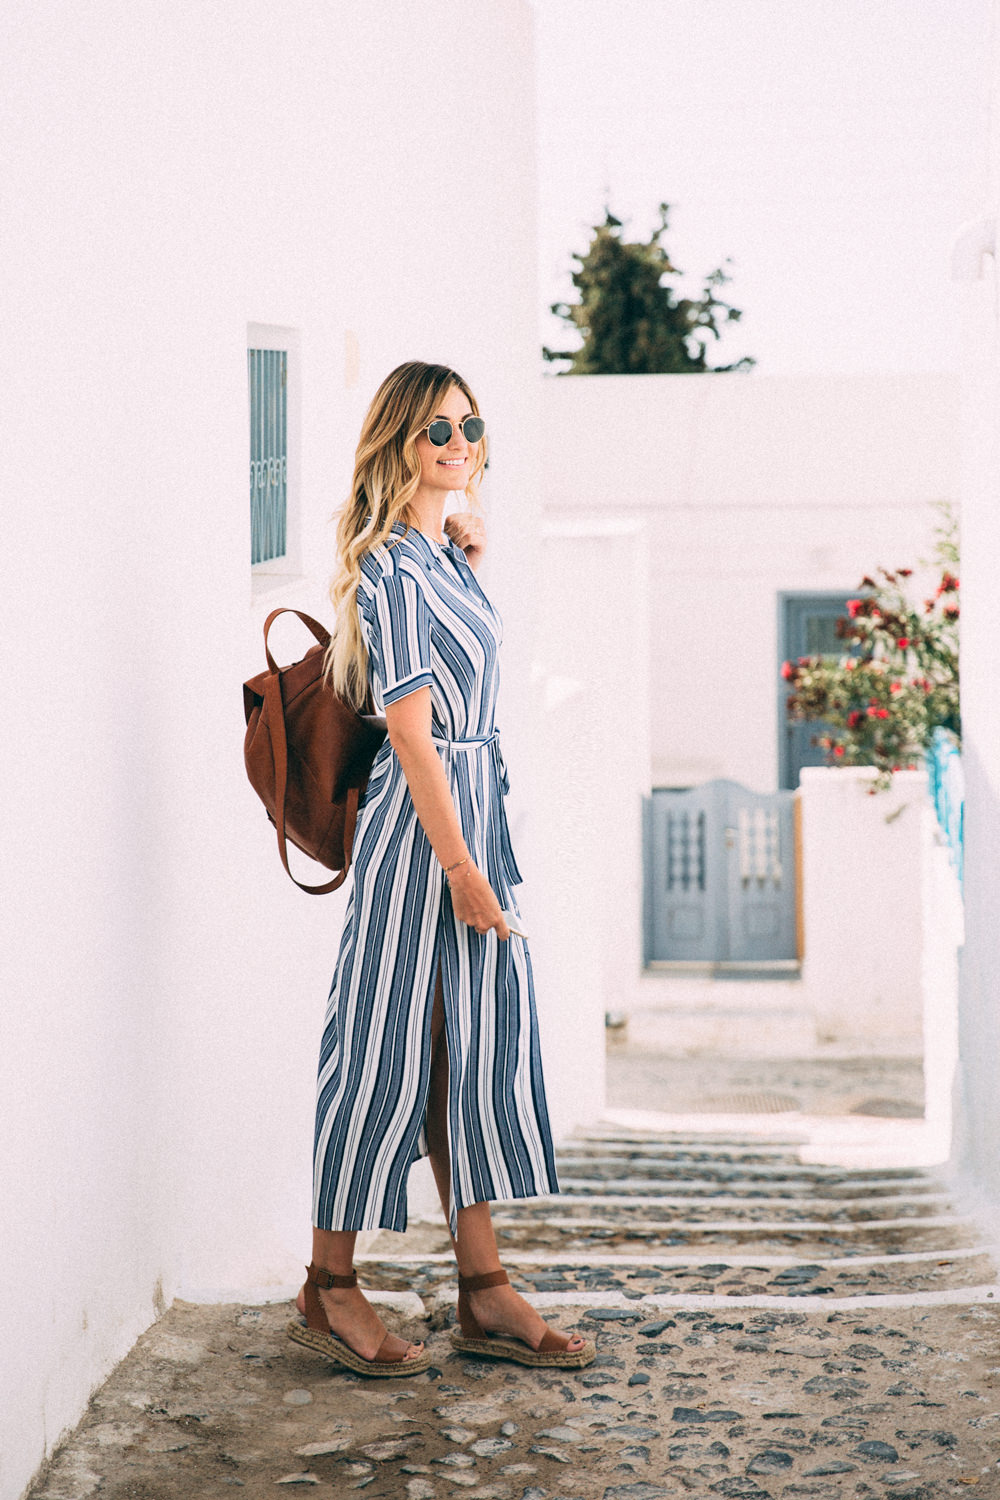 Caitlin Lindquist of the fashion and travel blog, Dash of Darling, shares her adventures in Pyrgos, Santorini Greece with Royal Caribbean Cruises in September.